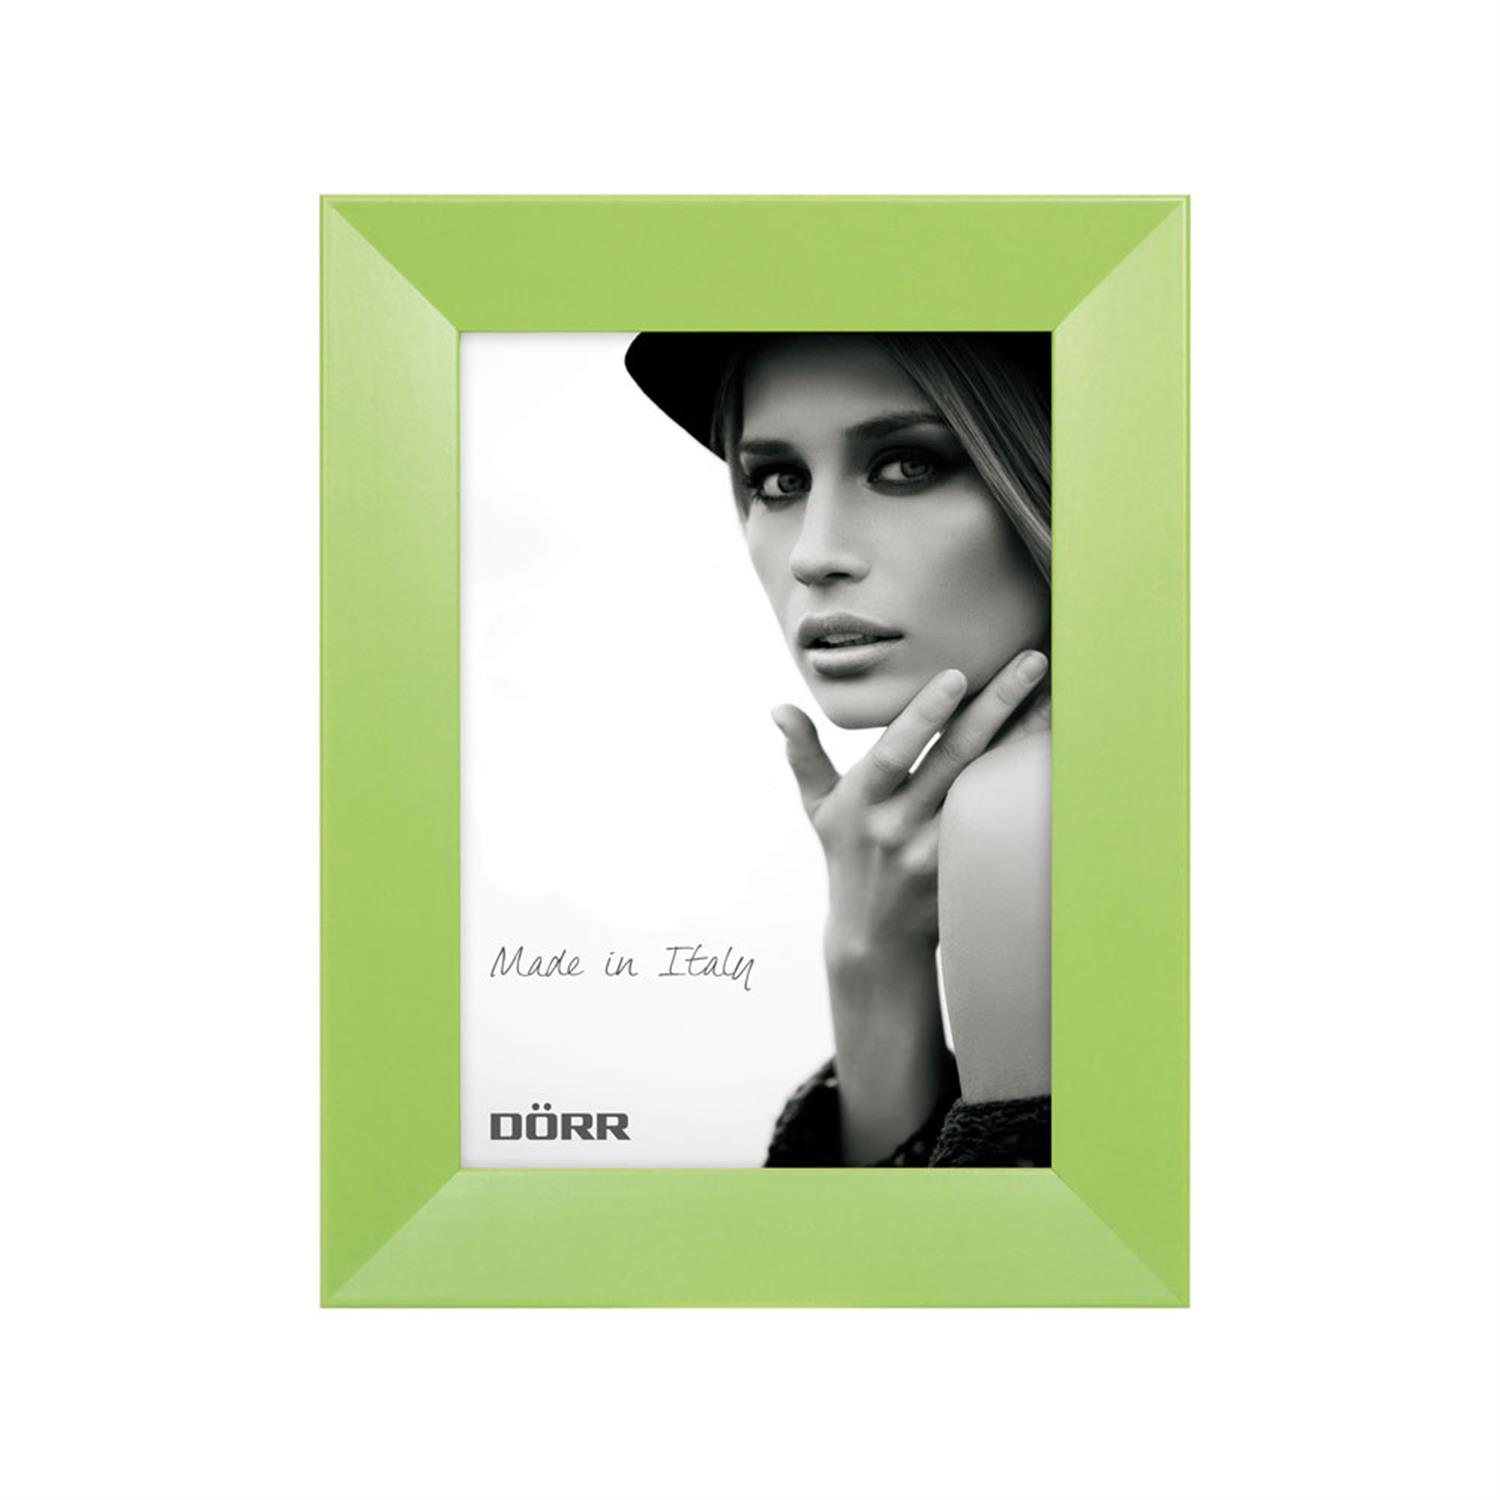 Dorr Trend Green 7x5 inches Wood Photo Frame